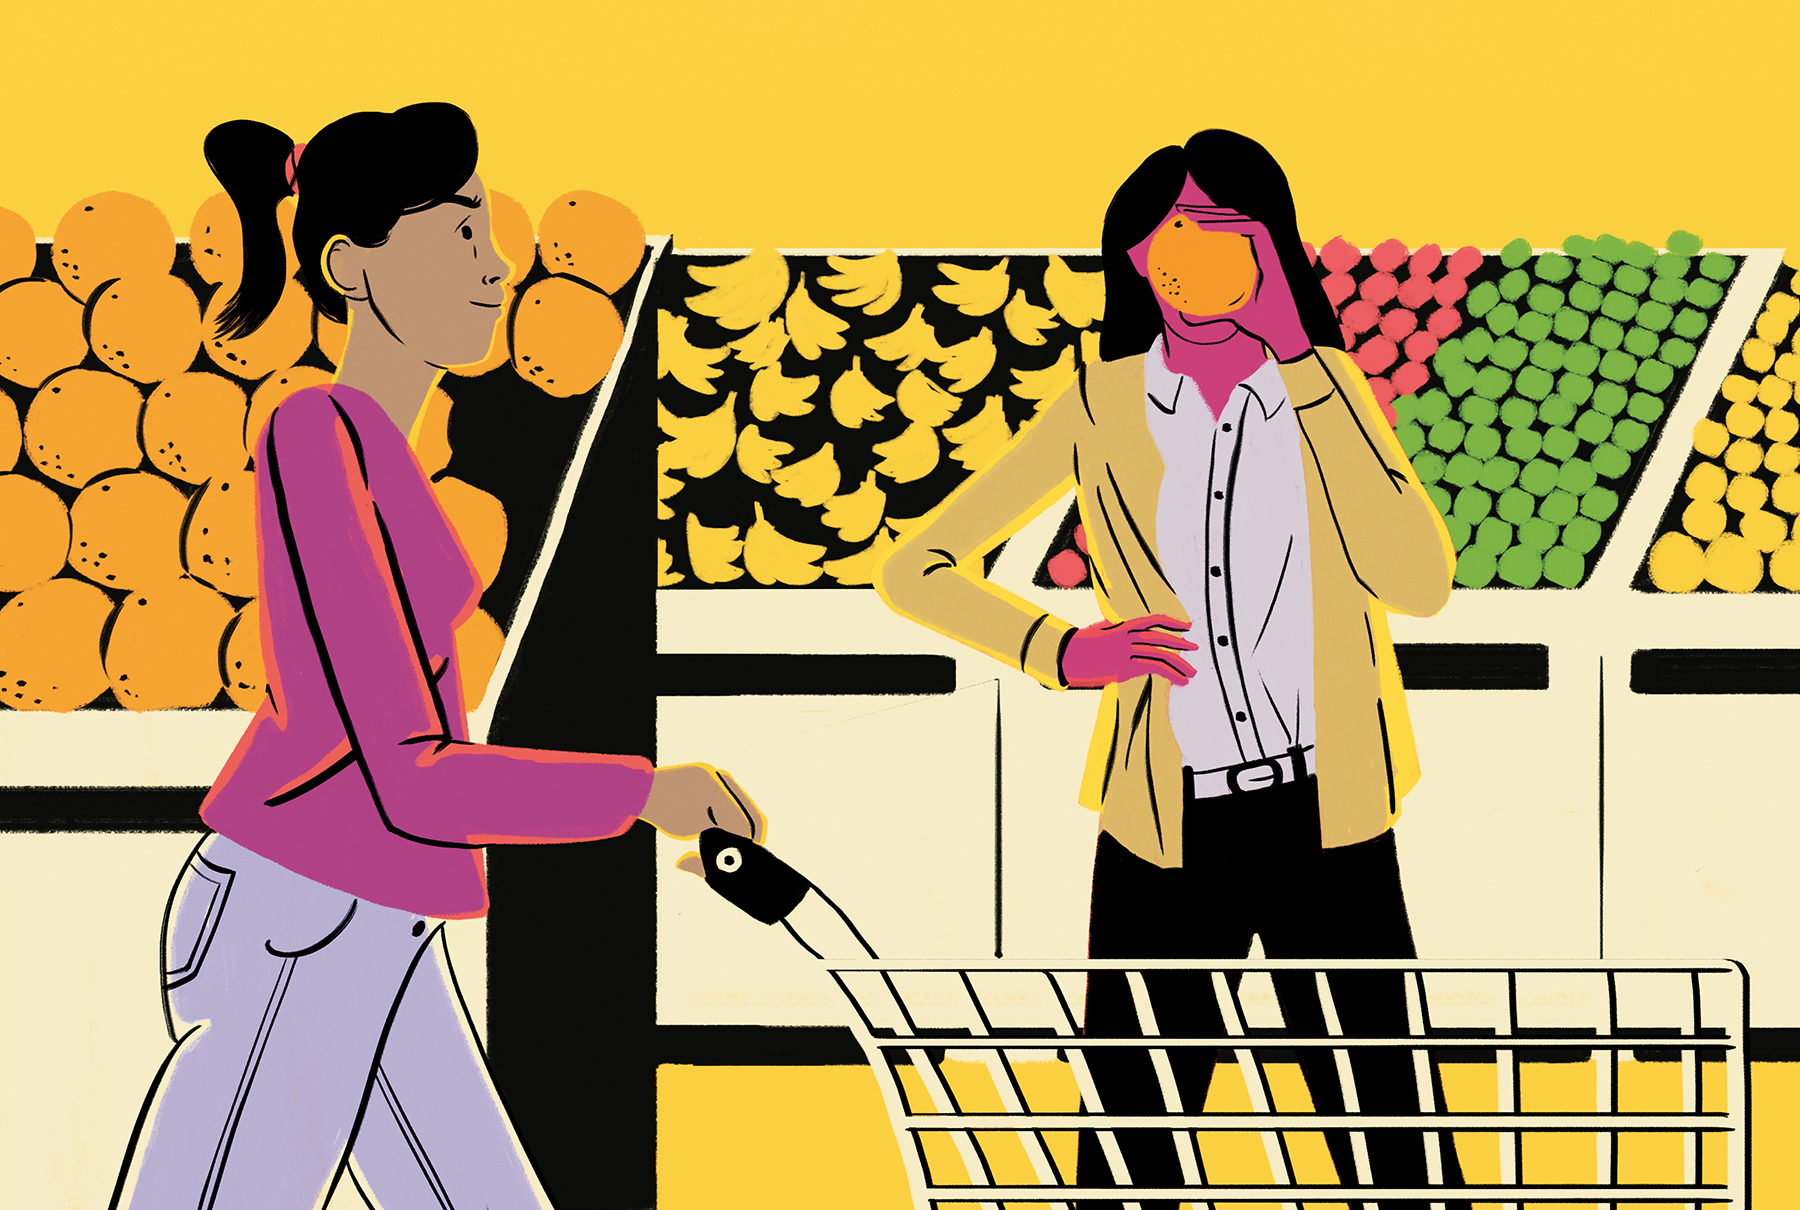 Illustration: 2 women in grocery store